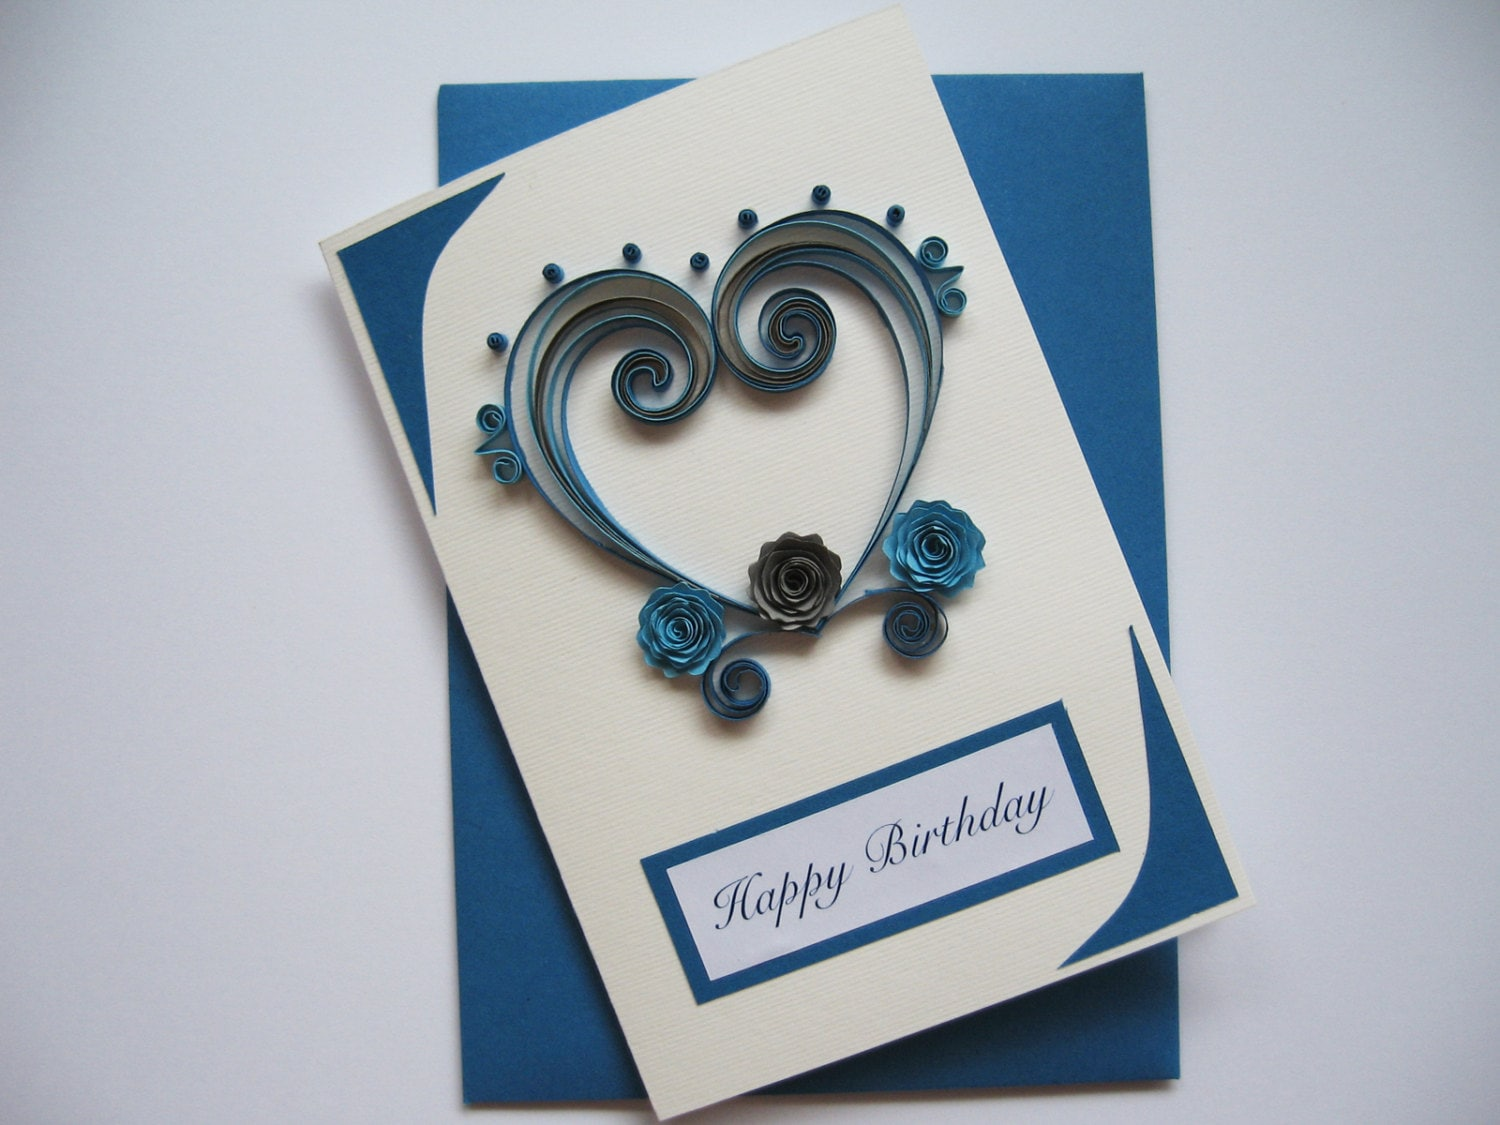 Happy Birthday Card for Loved one Husband Boyfriend – Birthday Cards for a Loved One